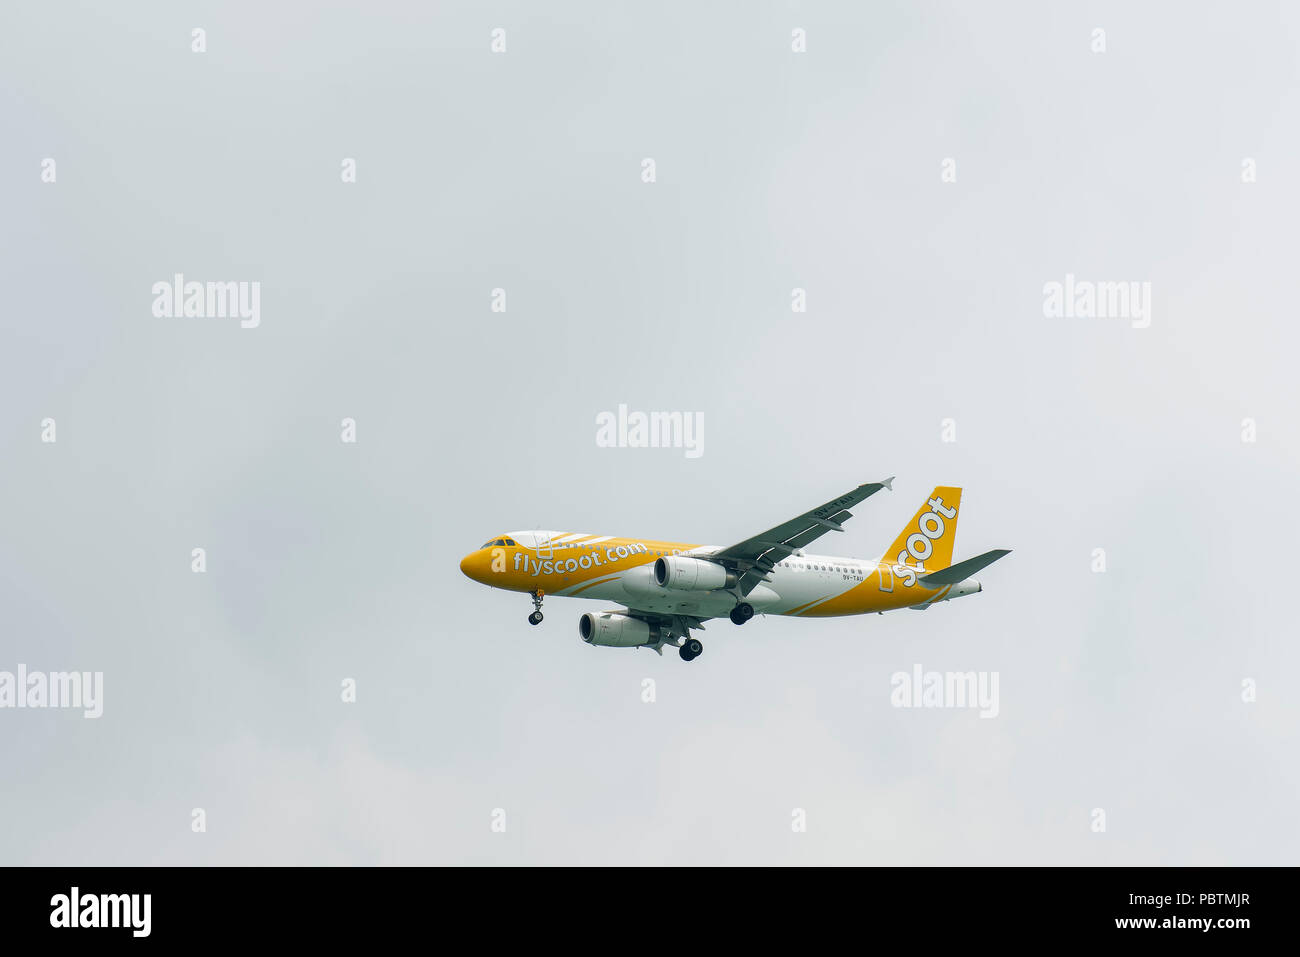 Singapore - June 03 2018: Airliner on final Approach into Changi Airport. - Stock Image